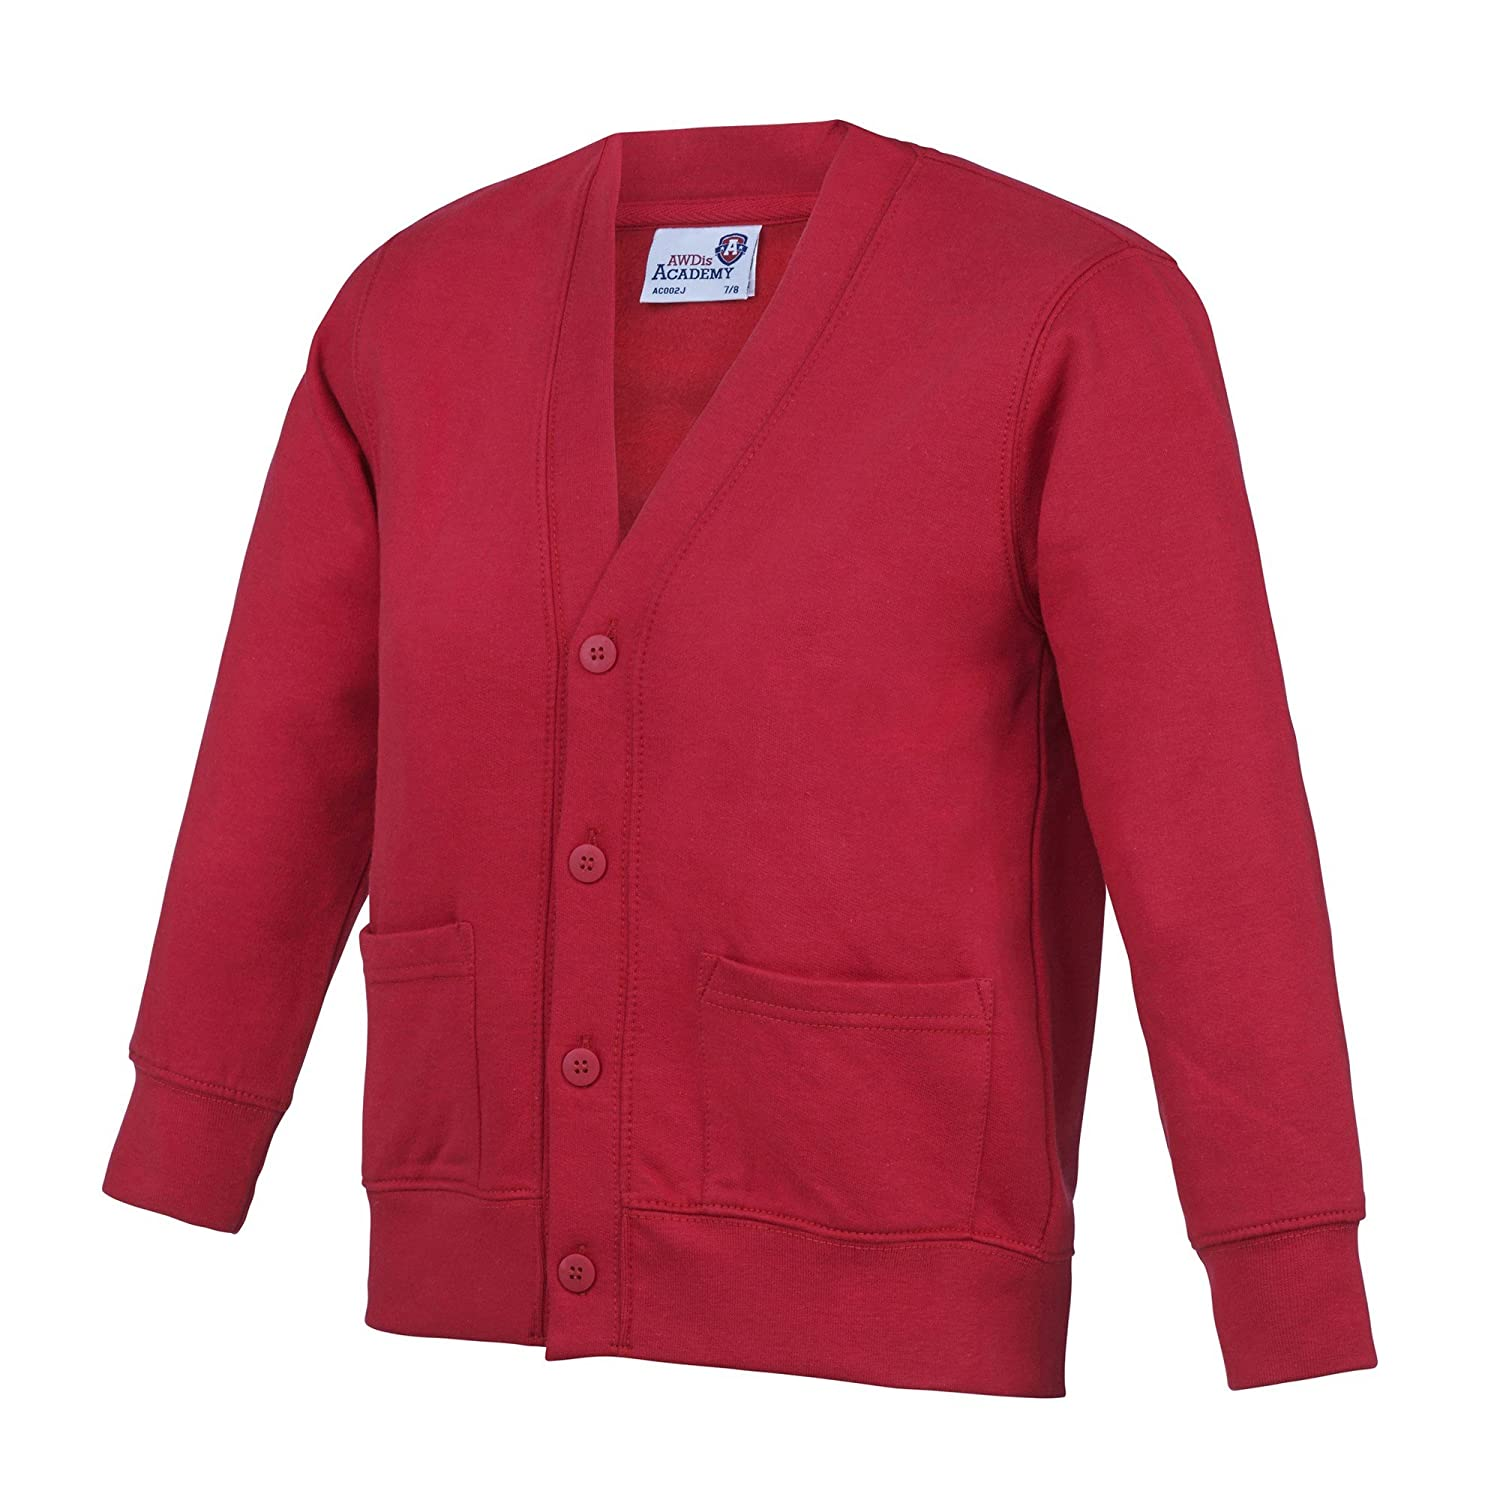 AWDis Academy Childrens/Kids Button Up School Cardigan